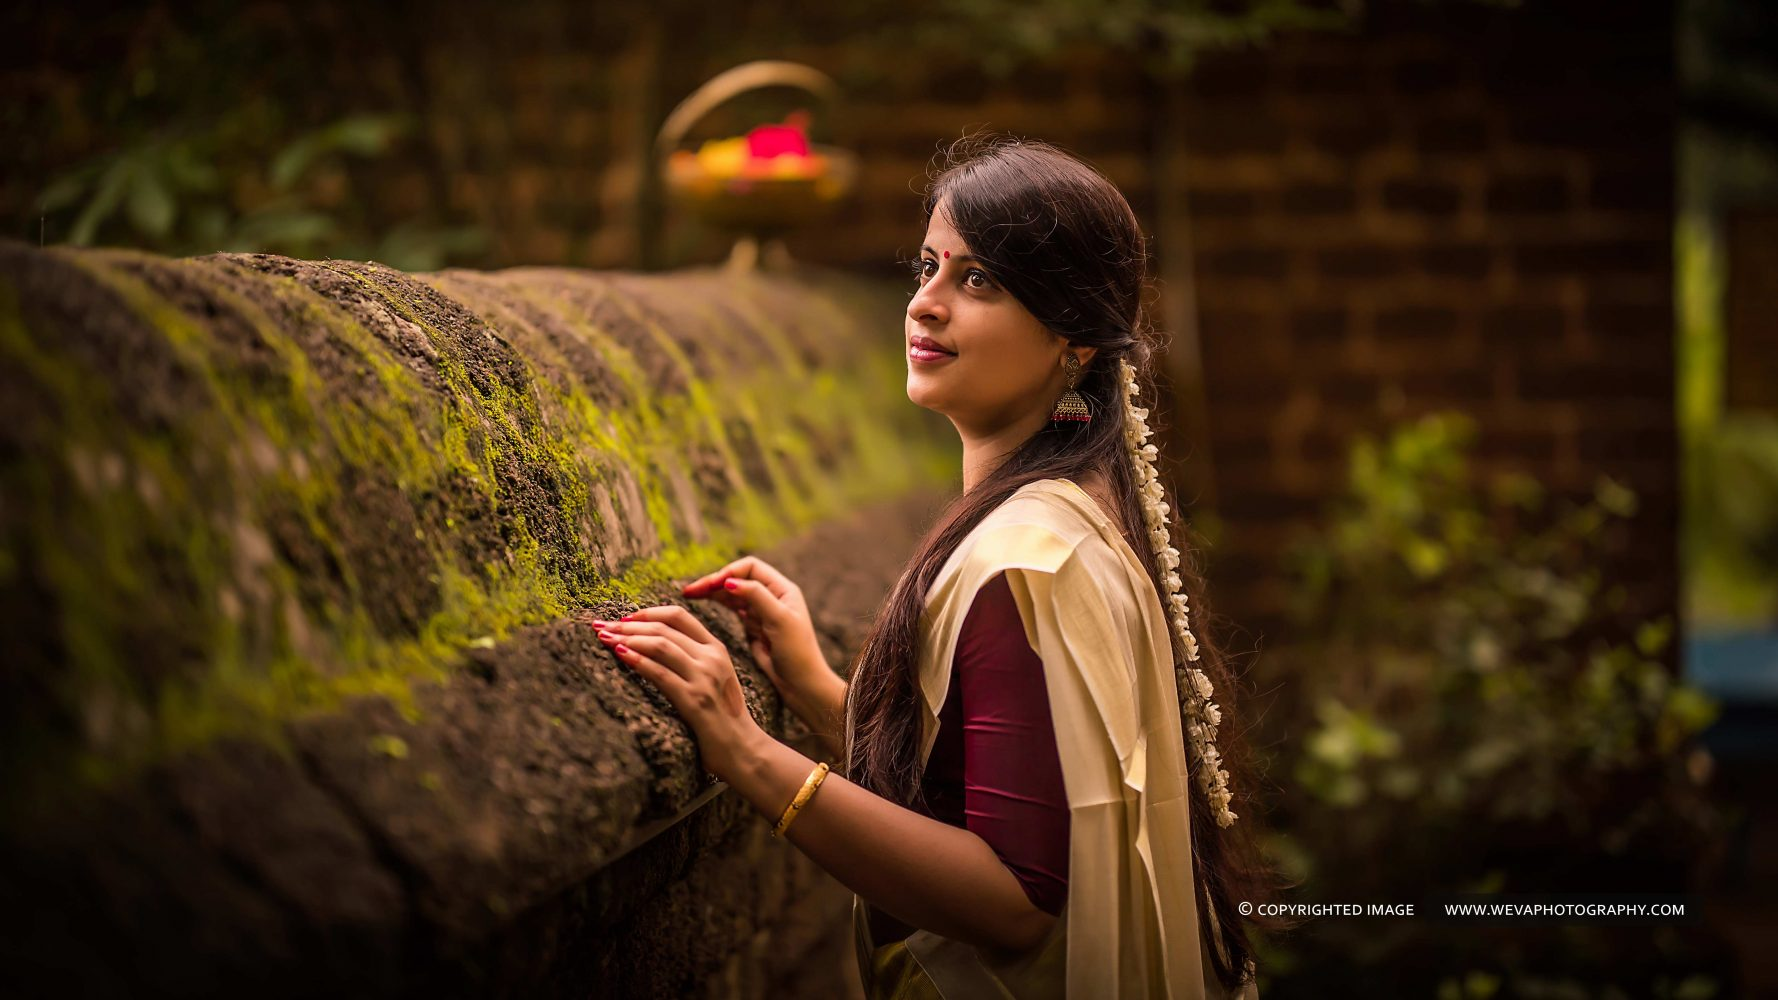 Traditions are the precious jewels which preserves and flourish our spiritual heritage... Presenting some traditional photoshoots @ Varikkasseri Mana through the magical frames of Weva..